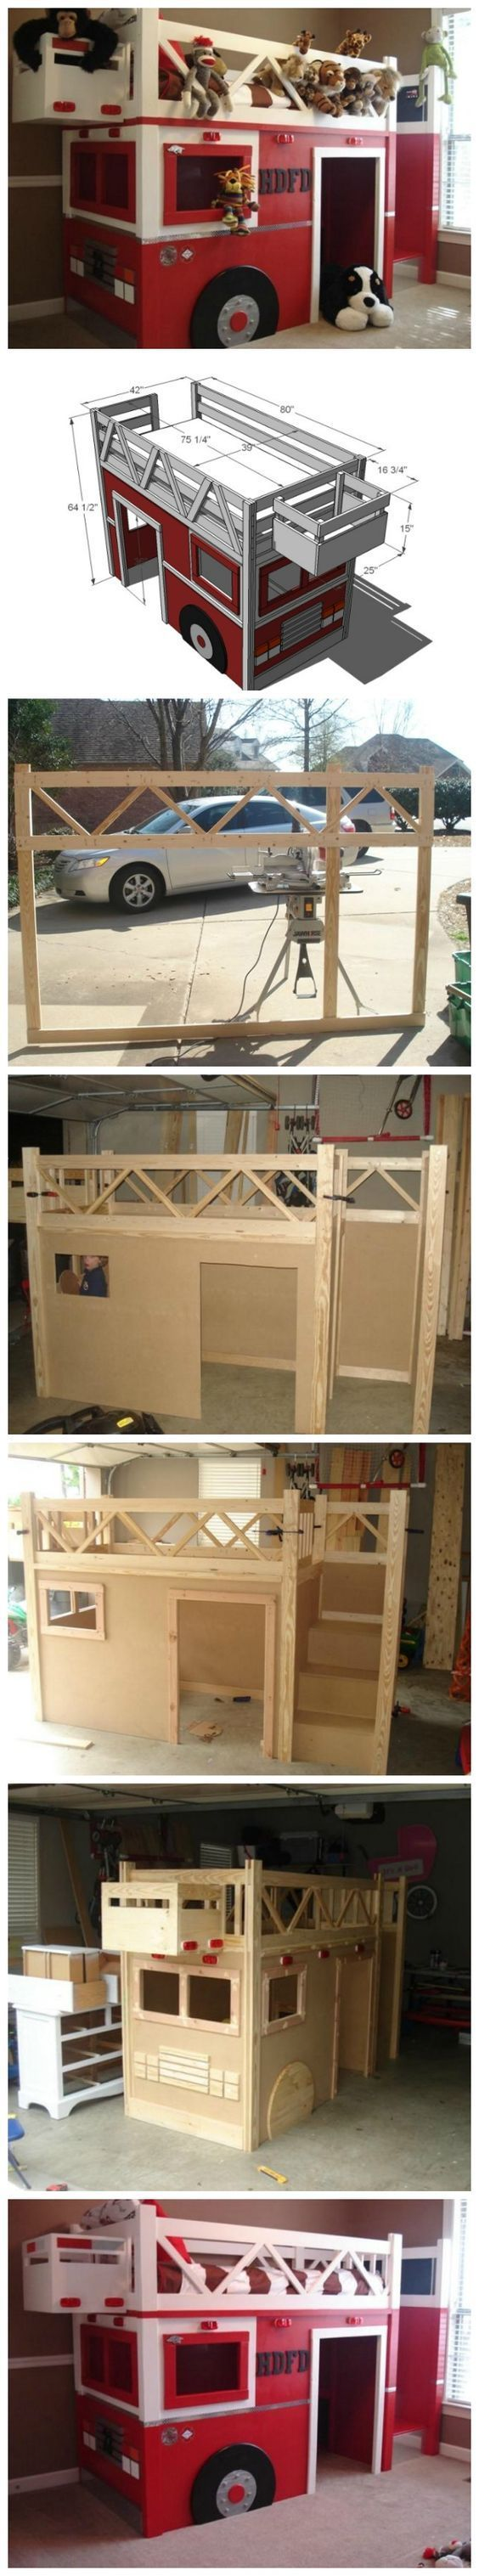 How To Build A Fire Truck Bunk Bed